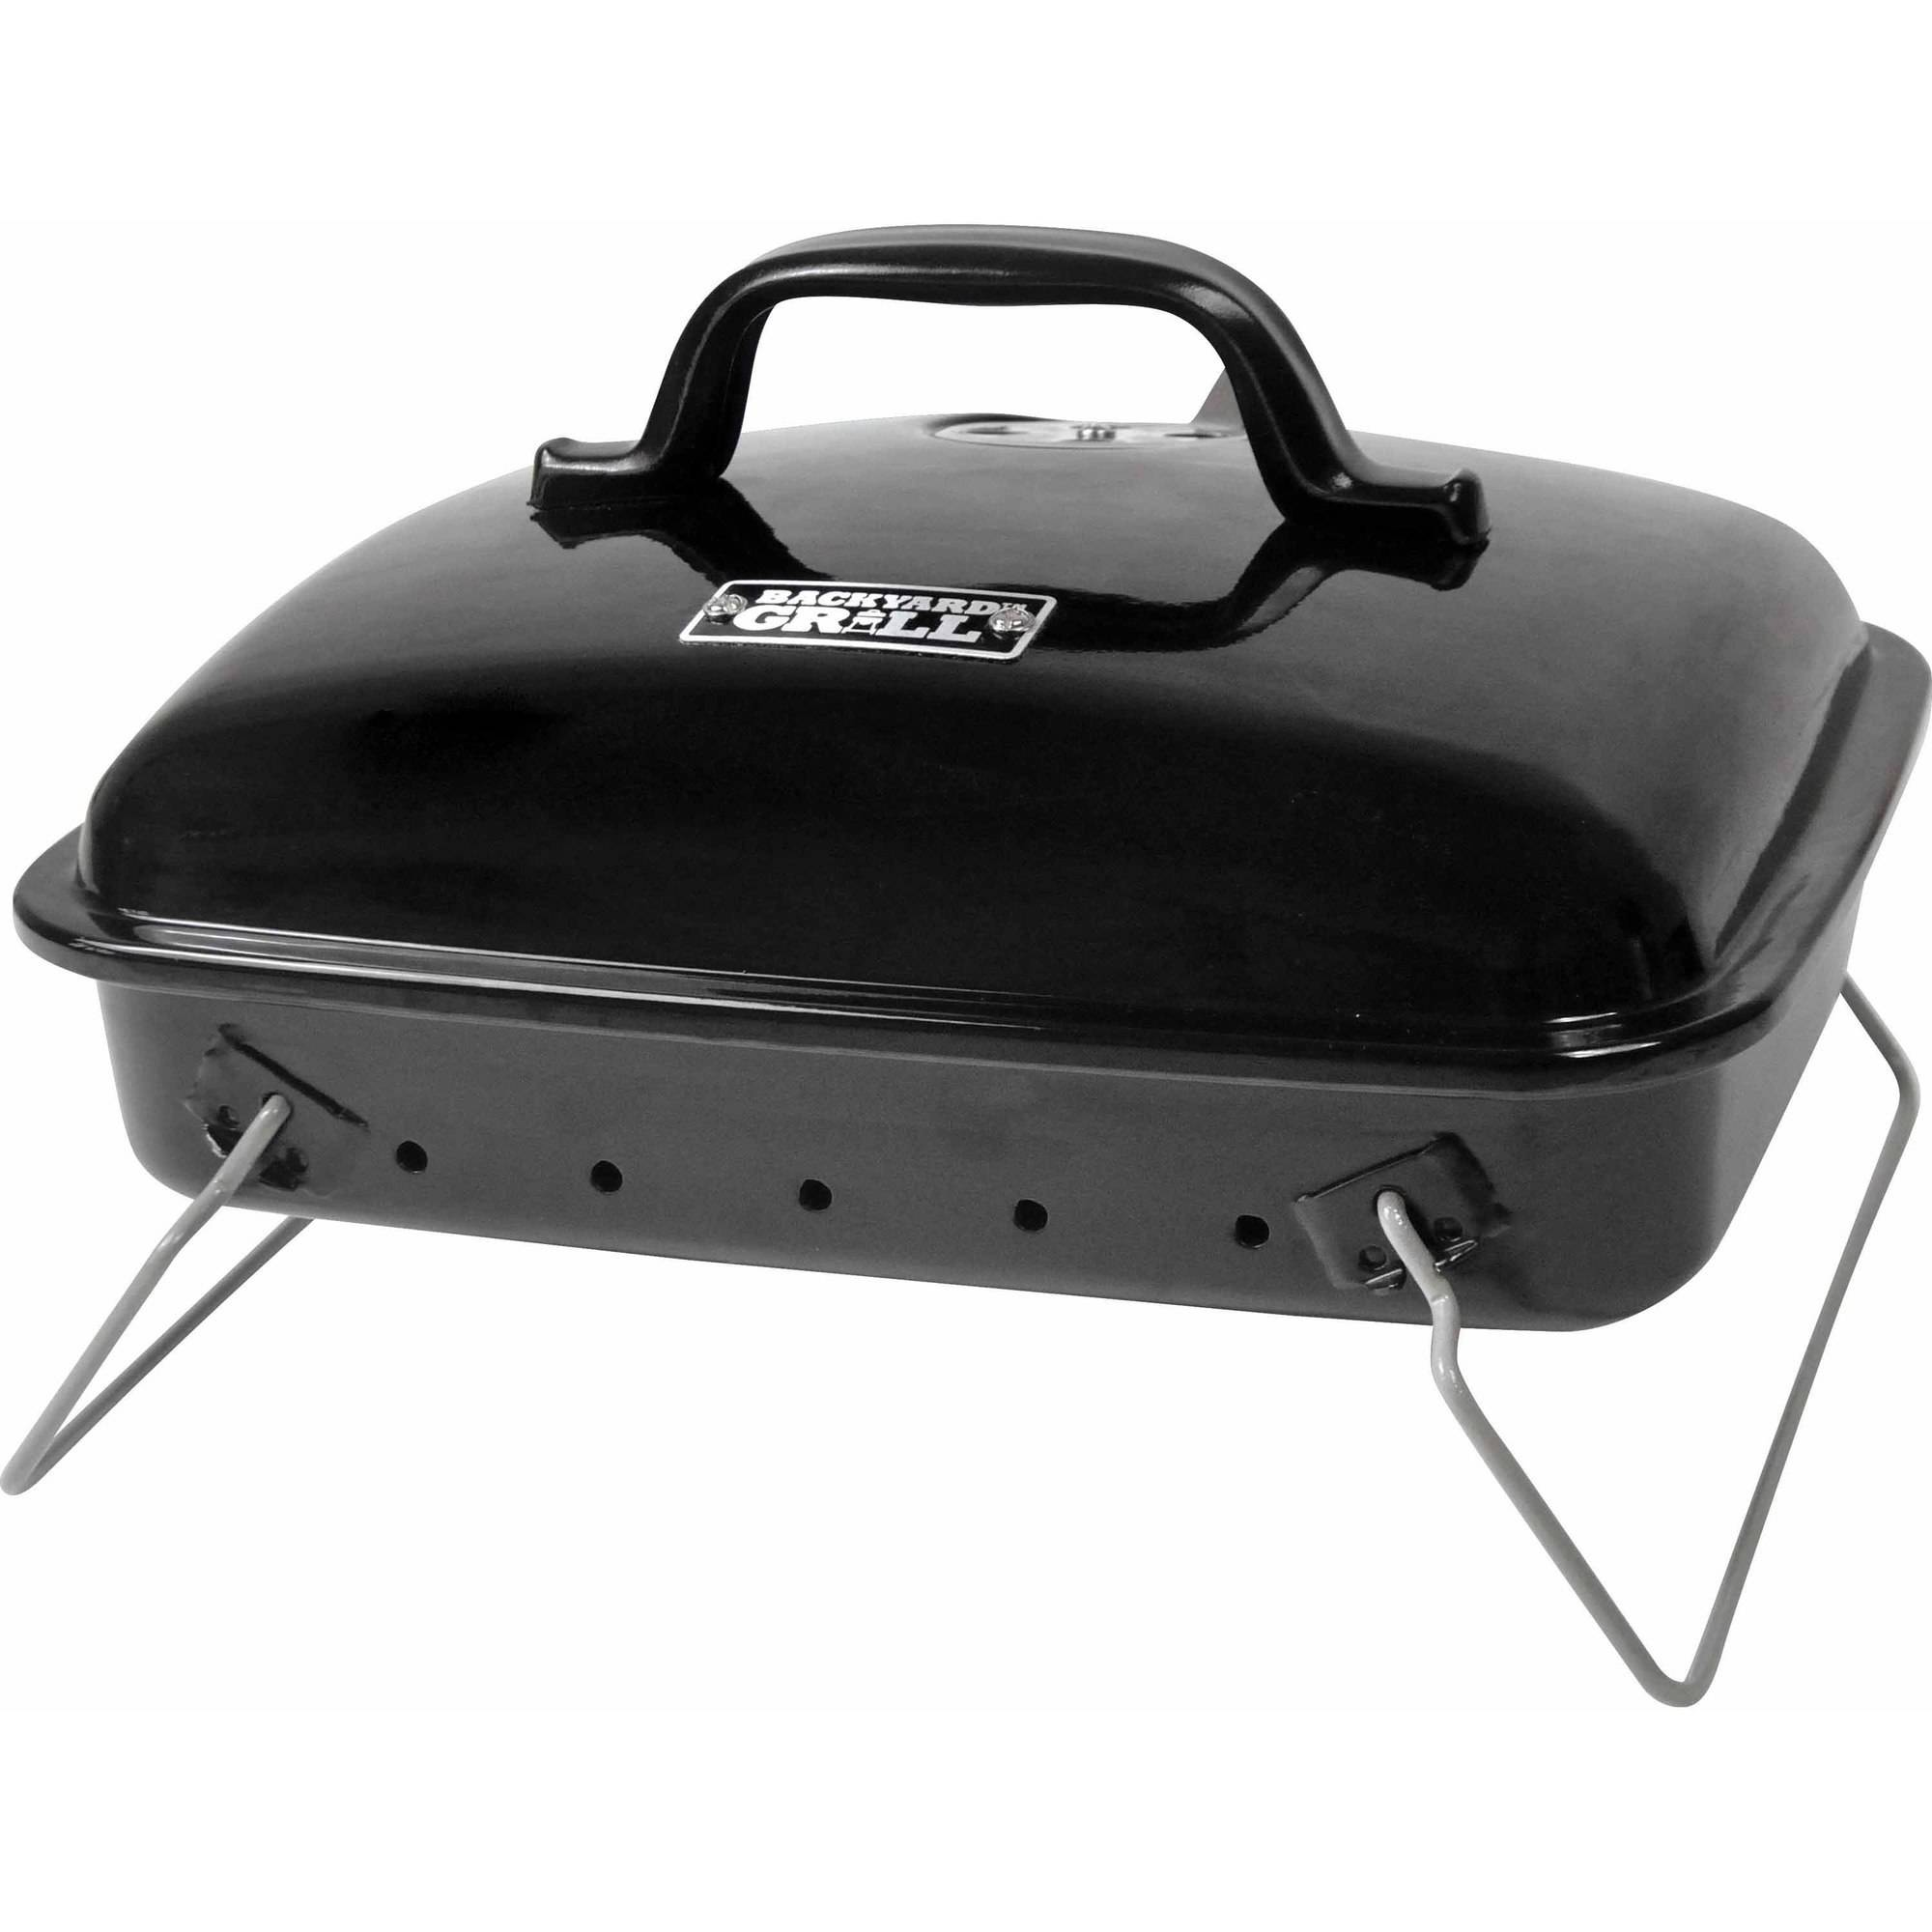 Backyard Grill Small Portable Charcoal Grill